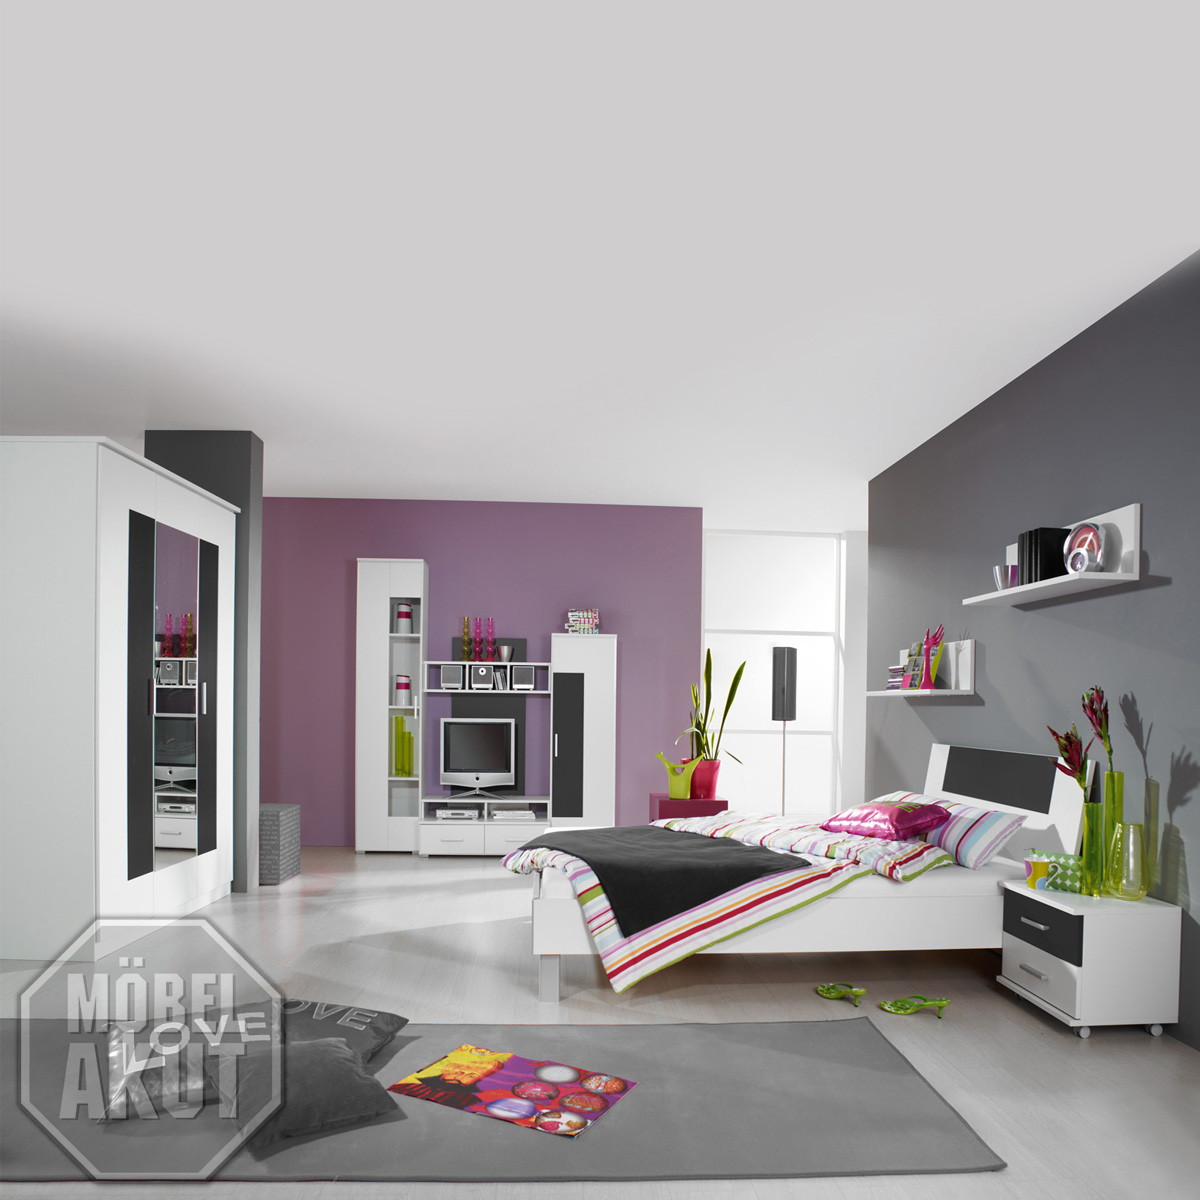 jugendzimmer fortuna kinderzimmer wei grau metallic. Black Bedroom Furniture Sets. Home Design Ideas